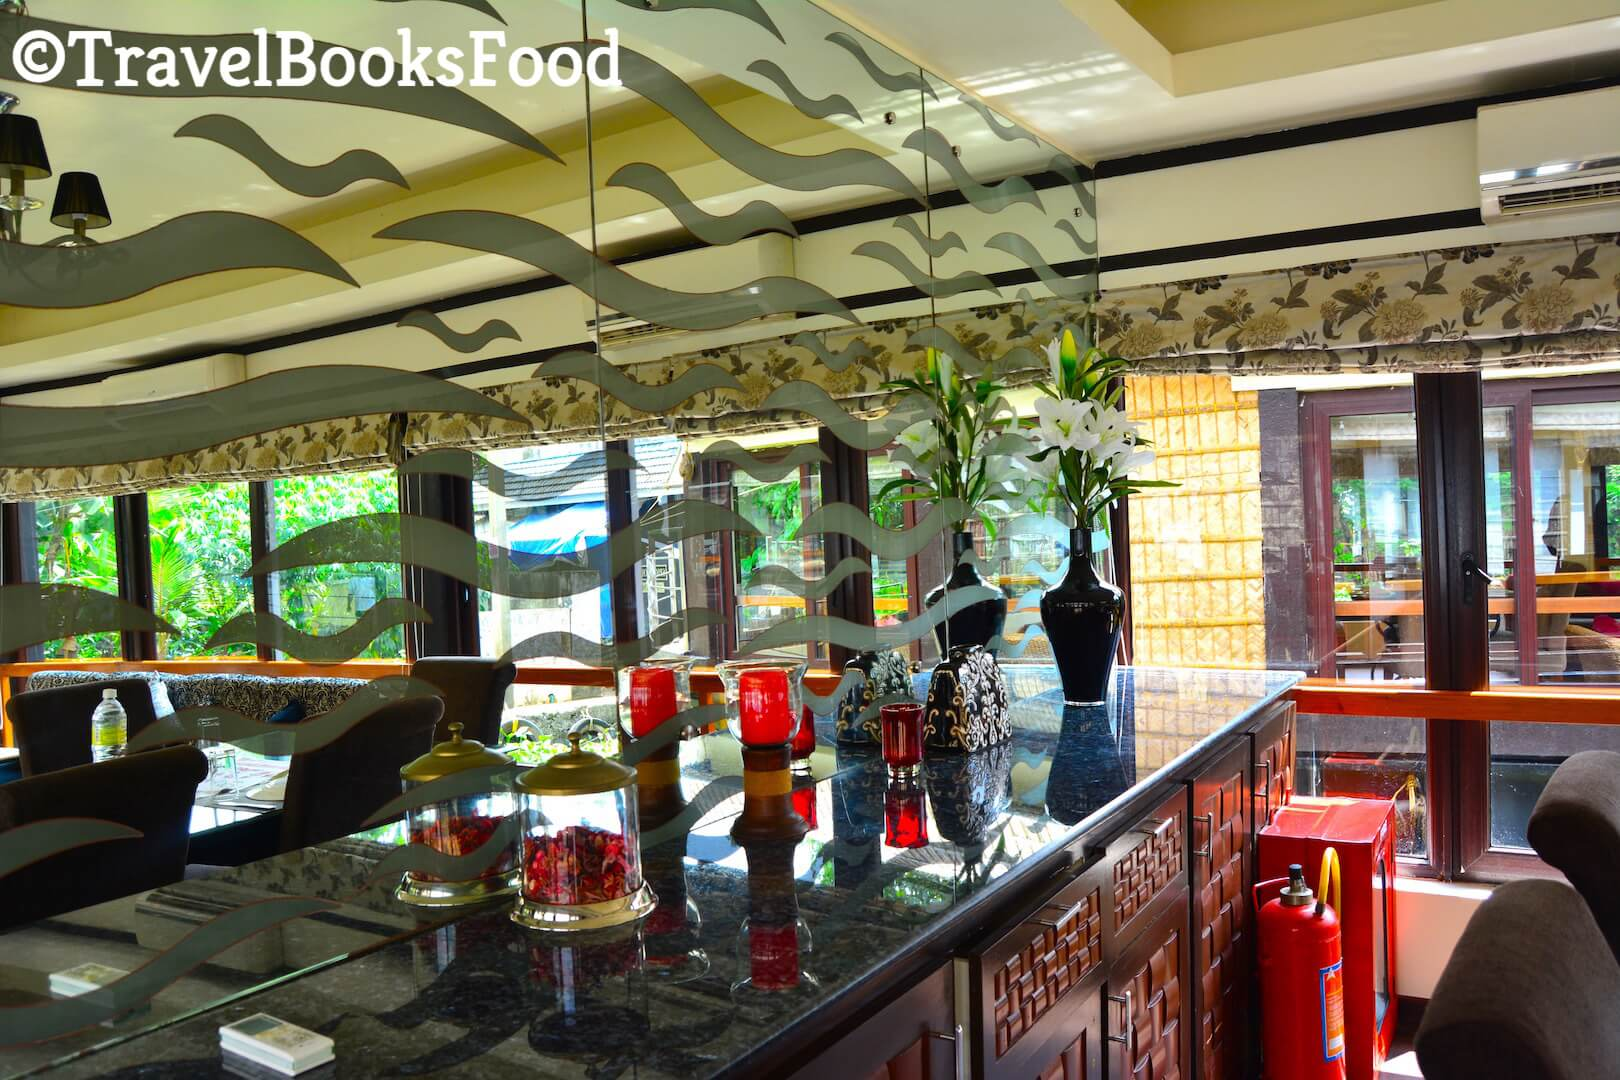 Photo of dining room inside Spice Routes Luxury Houseboat in Kerala, India